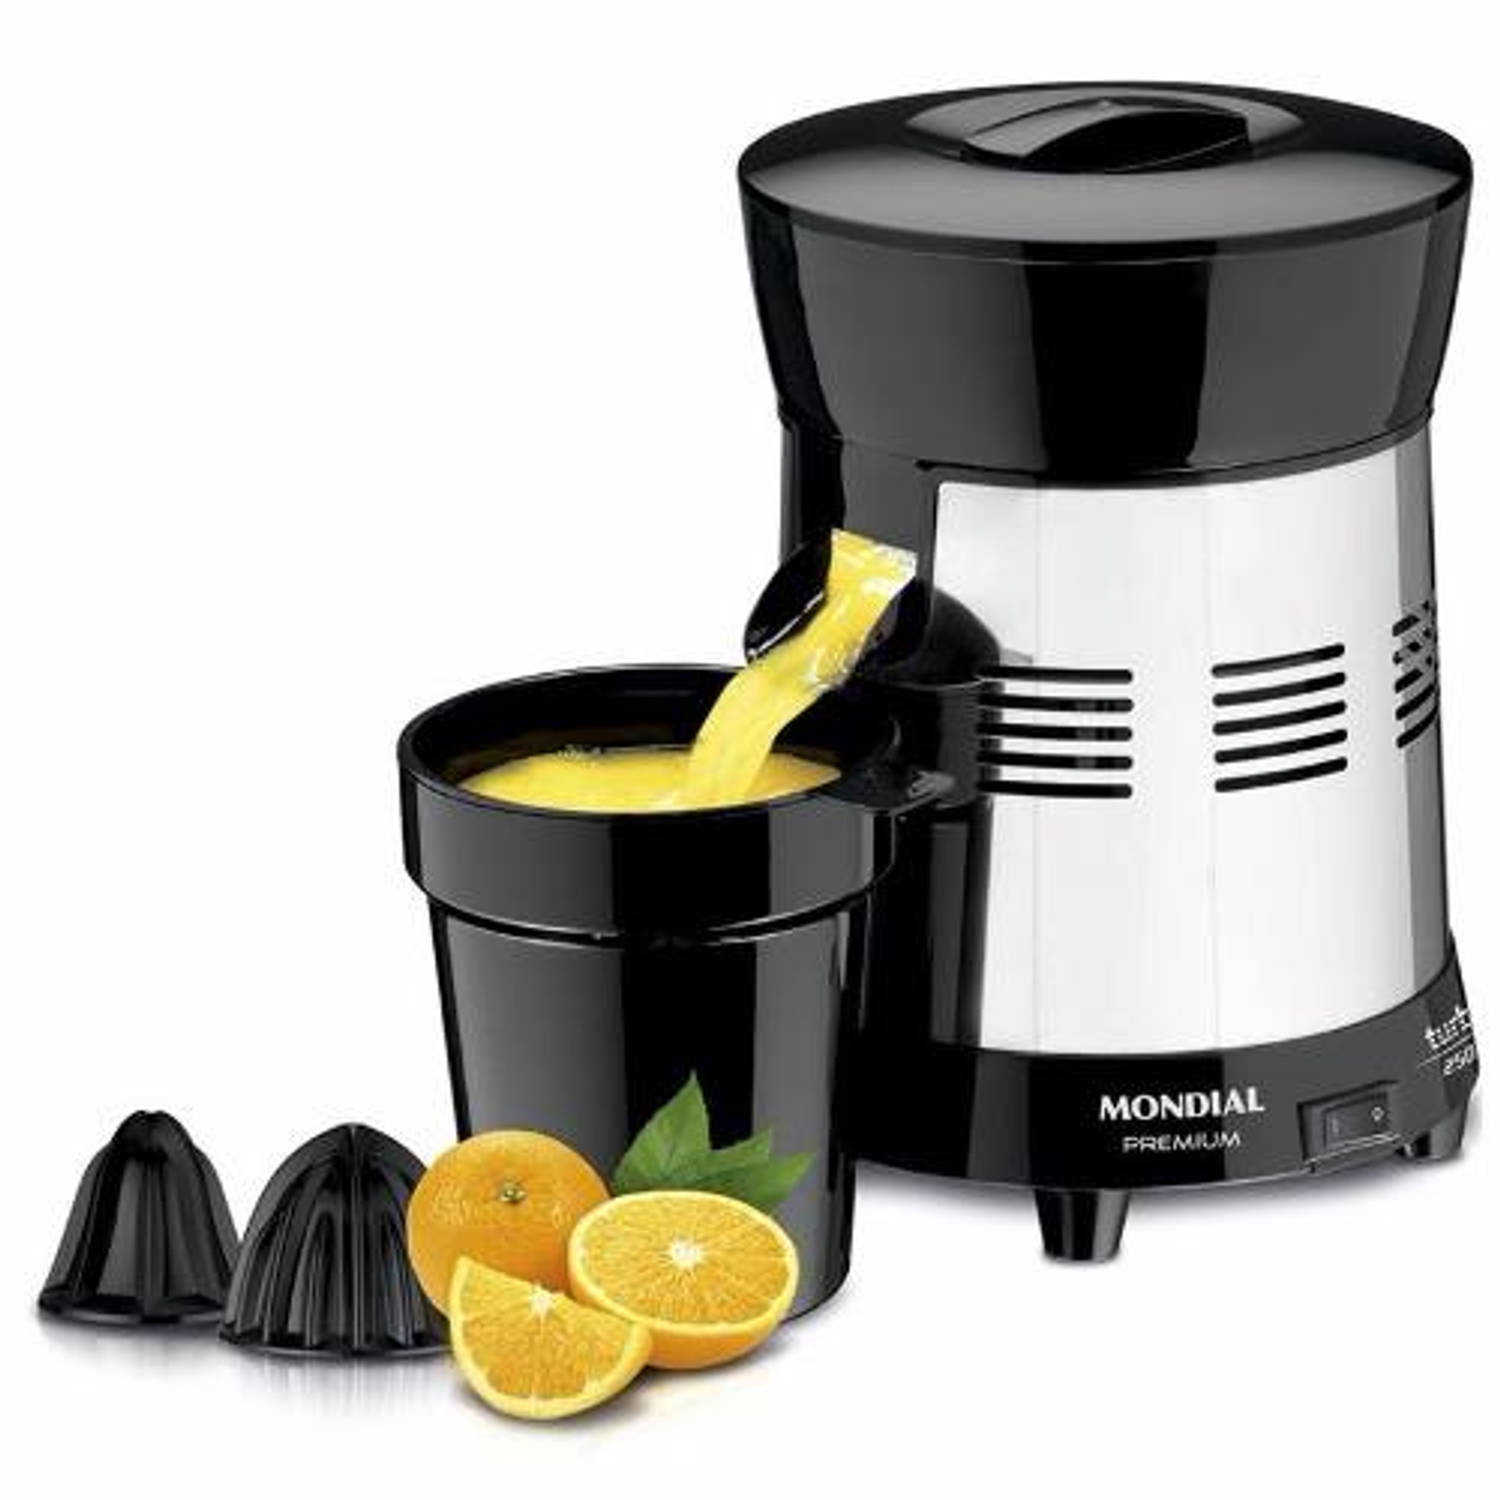 Mondial smart day citrus juicer turbo premium